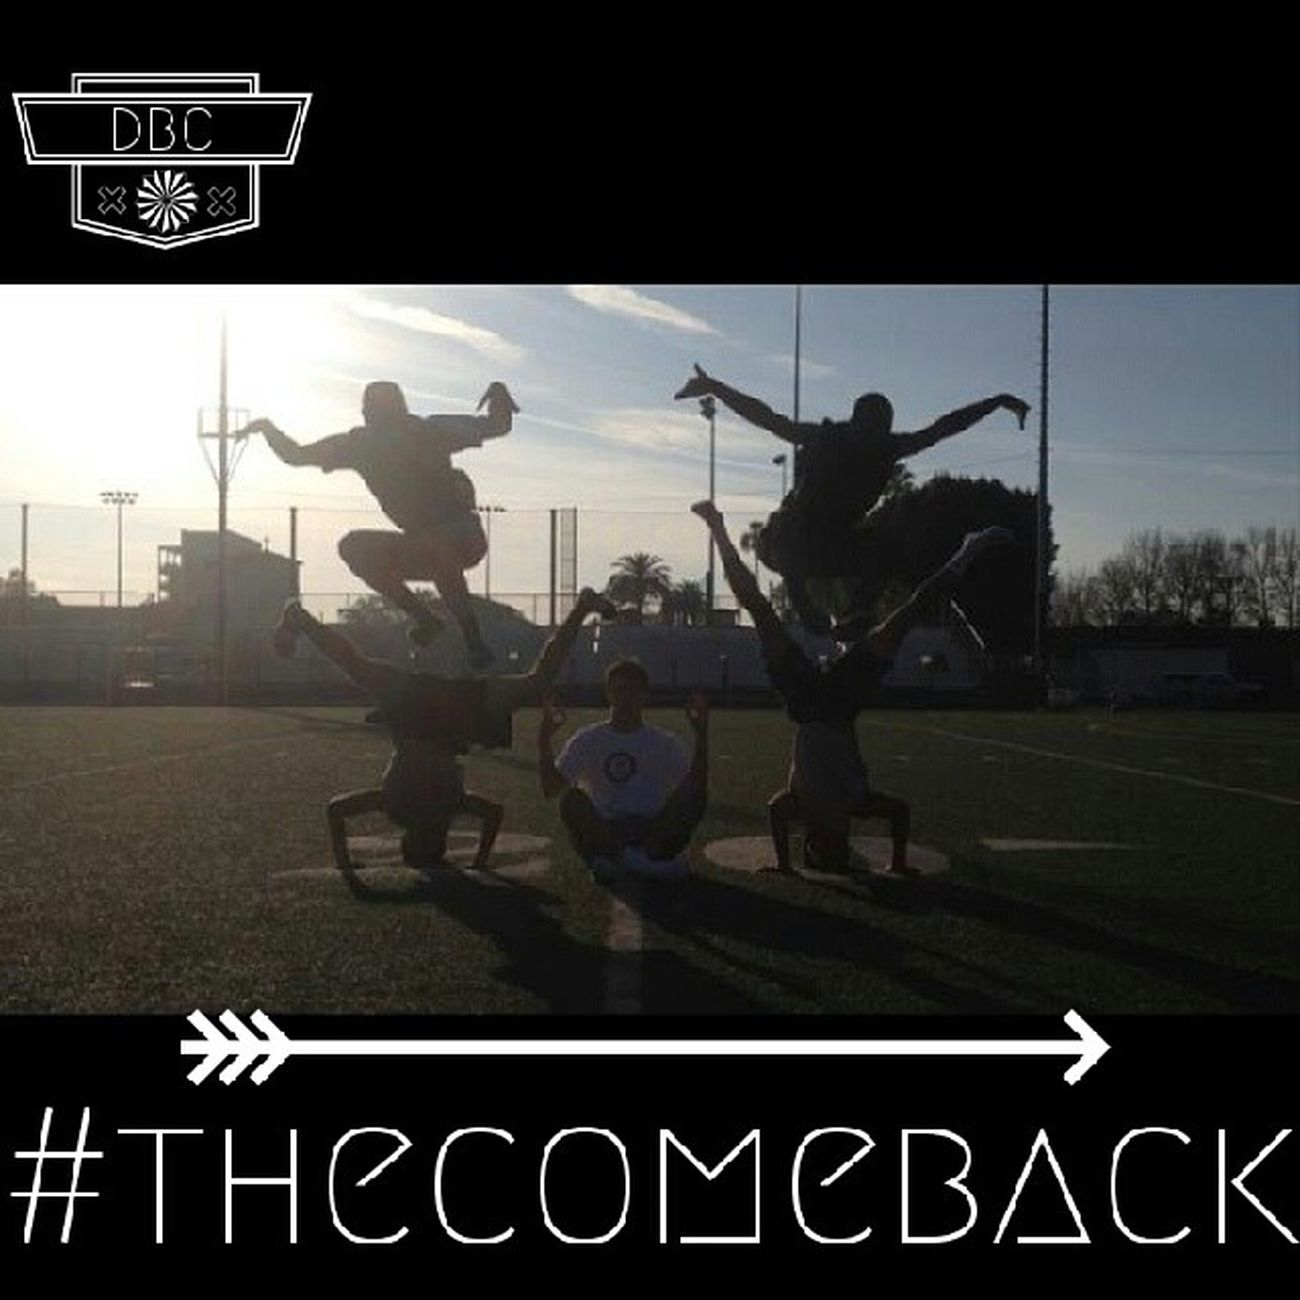 This thursday at home. ND Castle vs. Louisville and Crespi. Trackandfield DBC